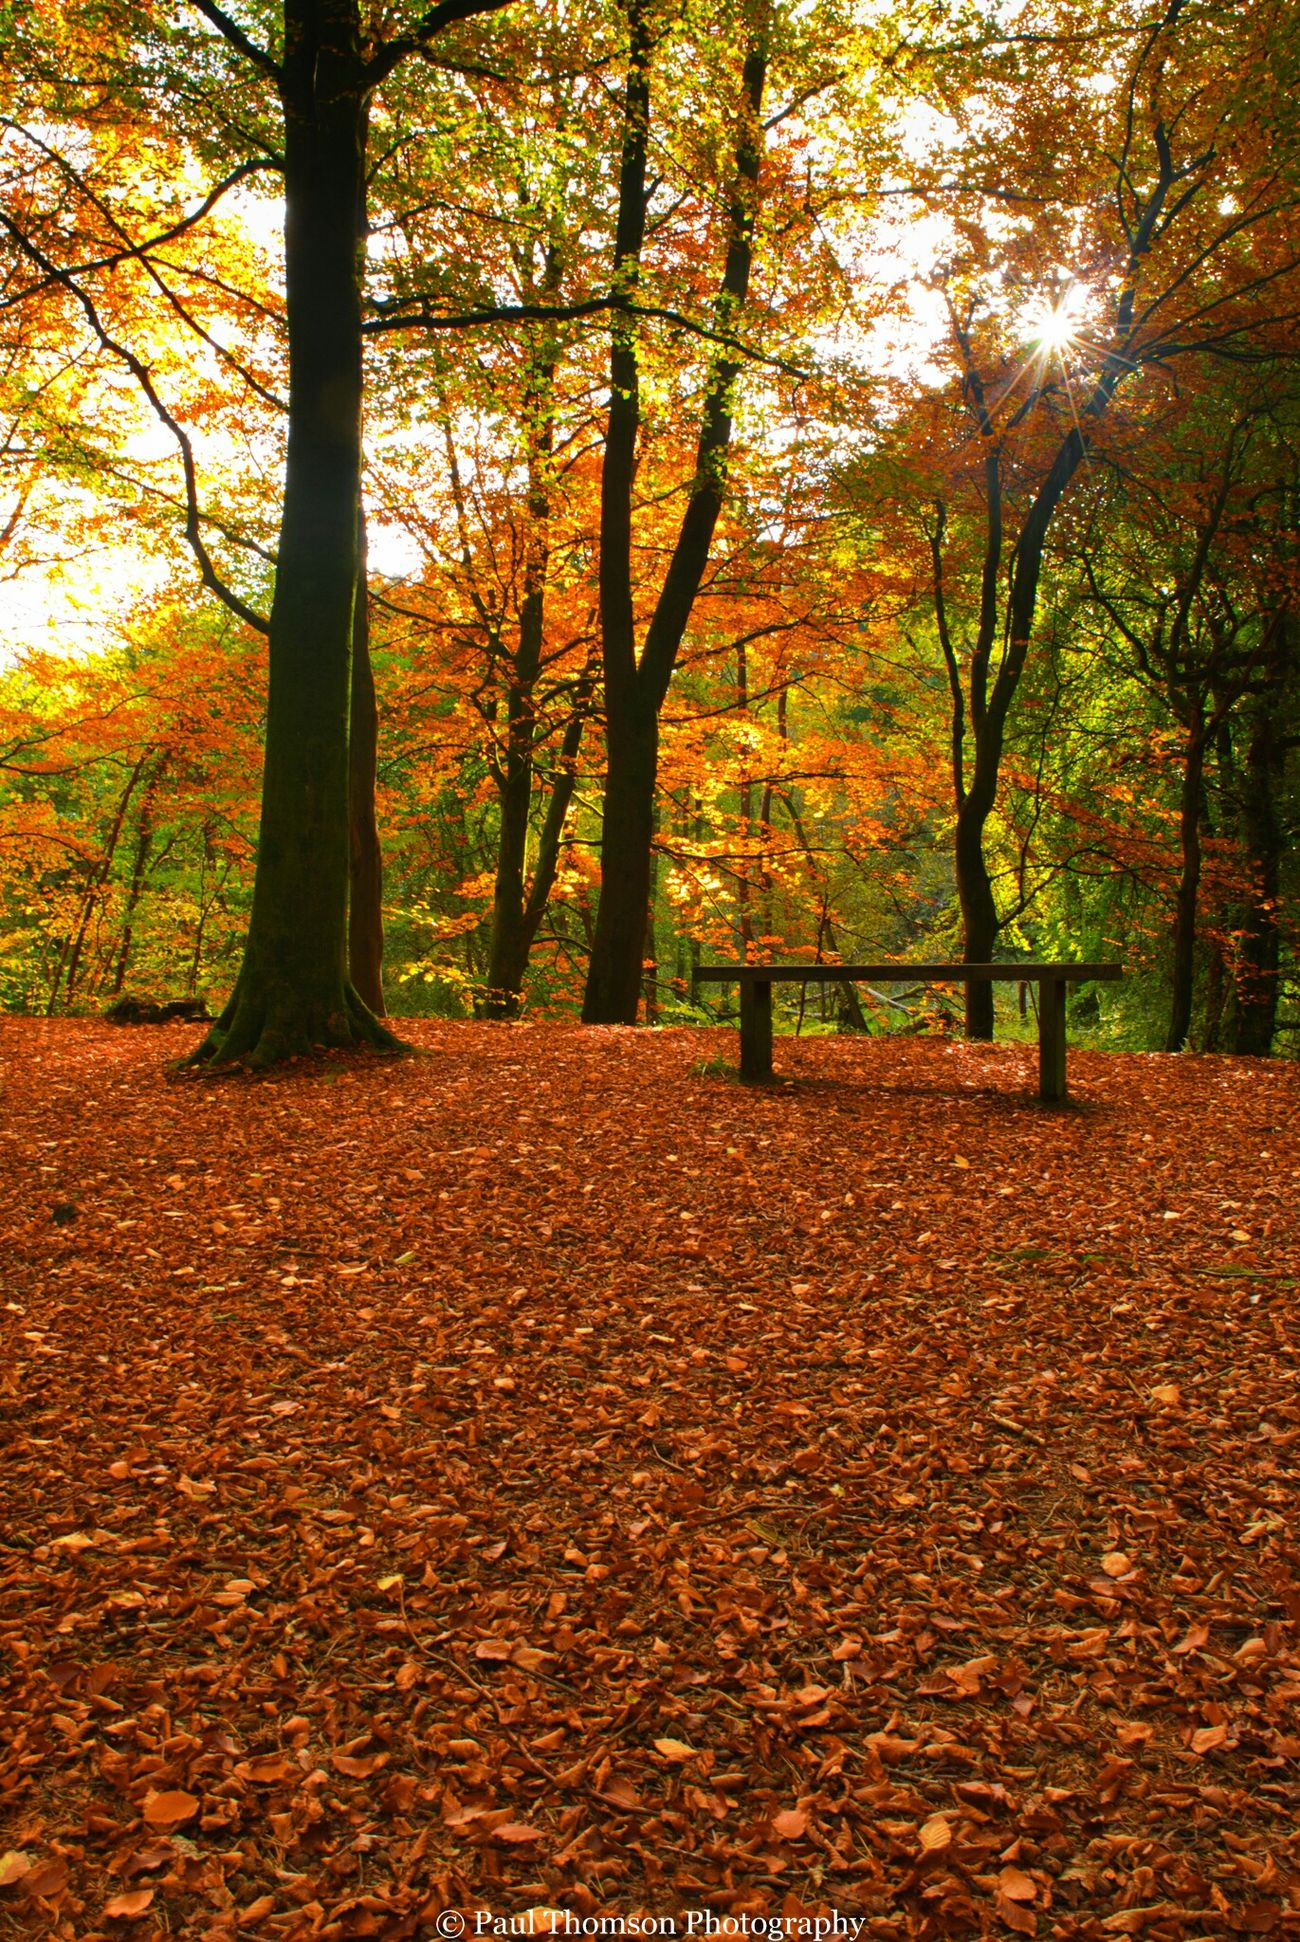 Autumn Light Gelt Woods Landscapes Outdoor Woods Brampton Uk Nature Walking